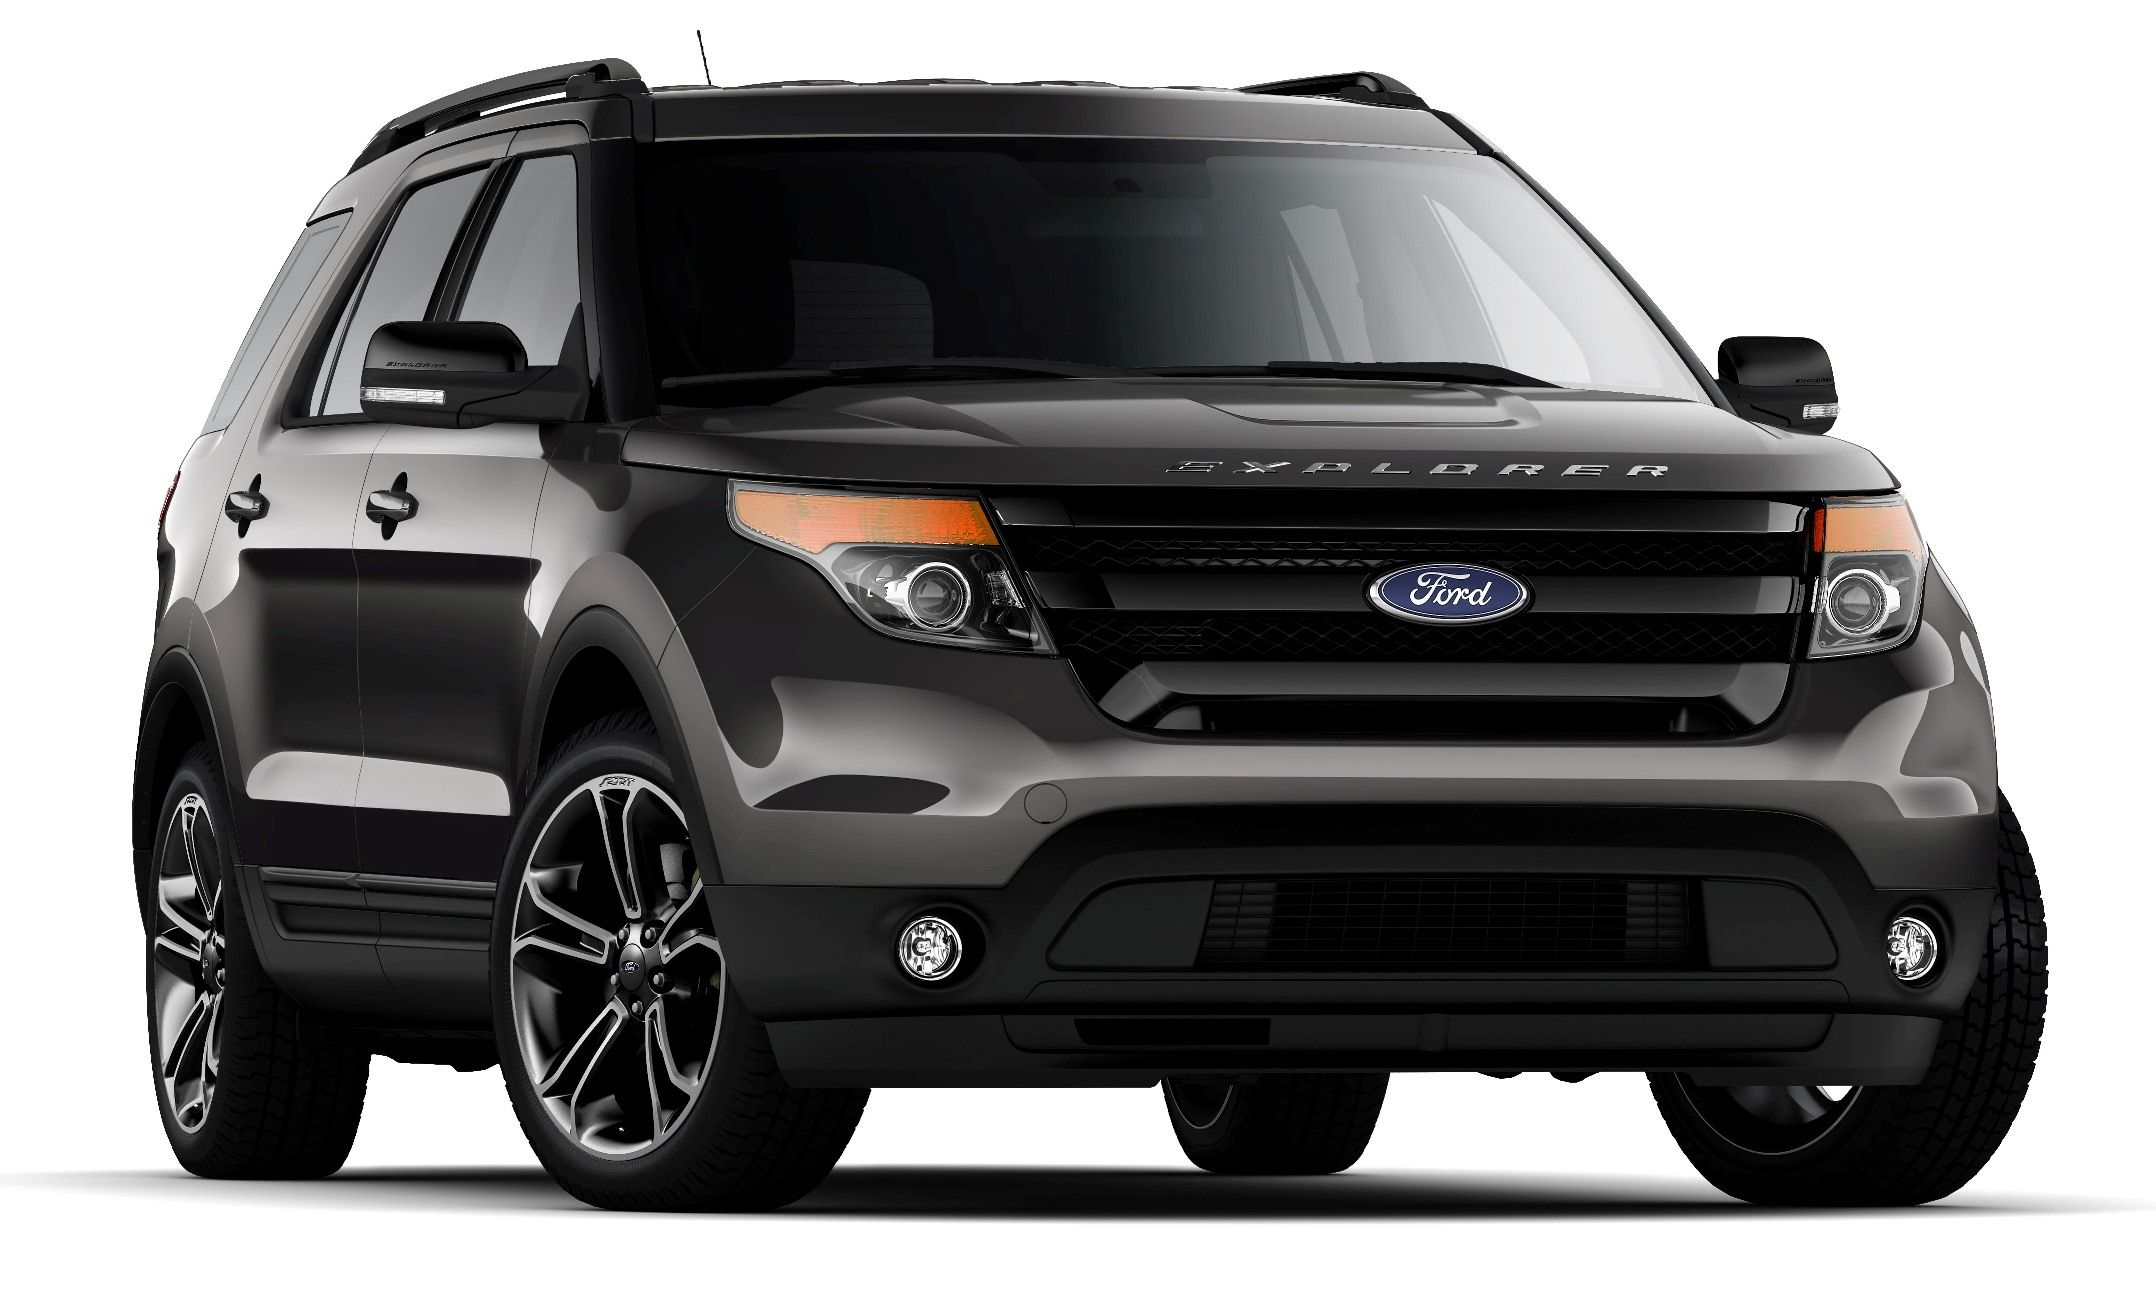 2015 Ford Explorer Black Wallpaper Http Carwallspaper Com 2015